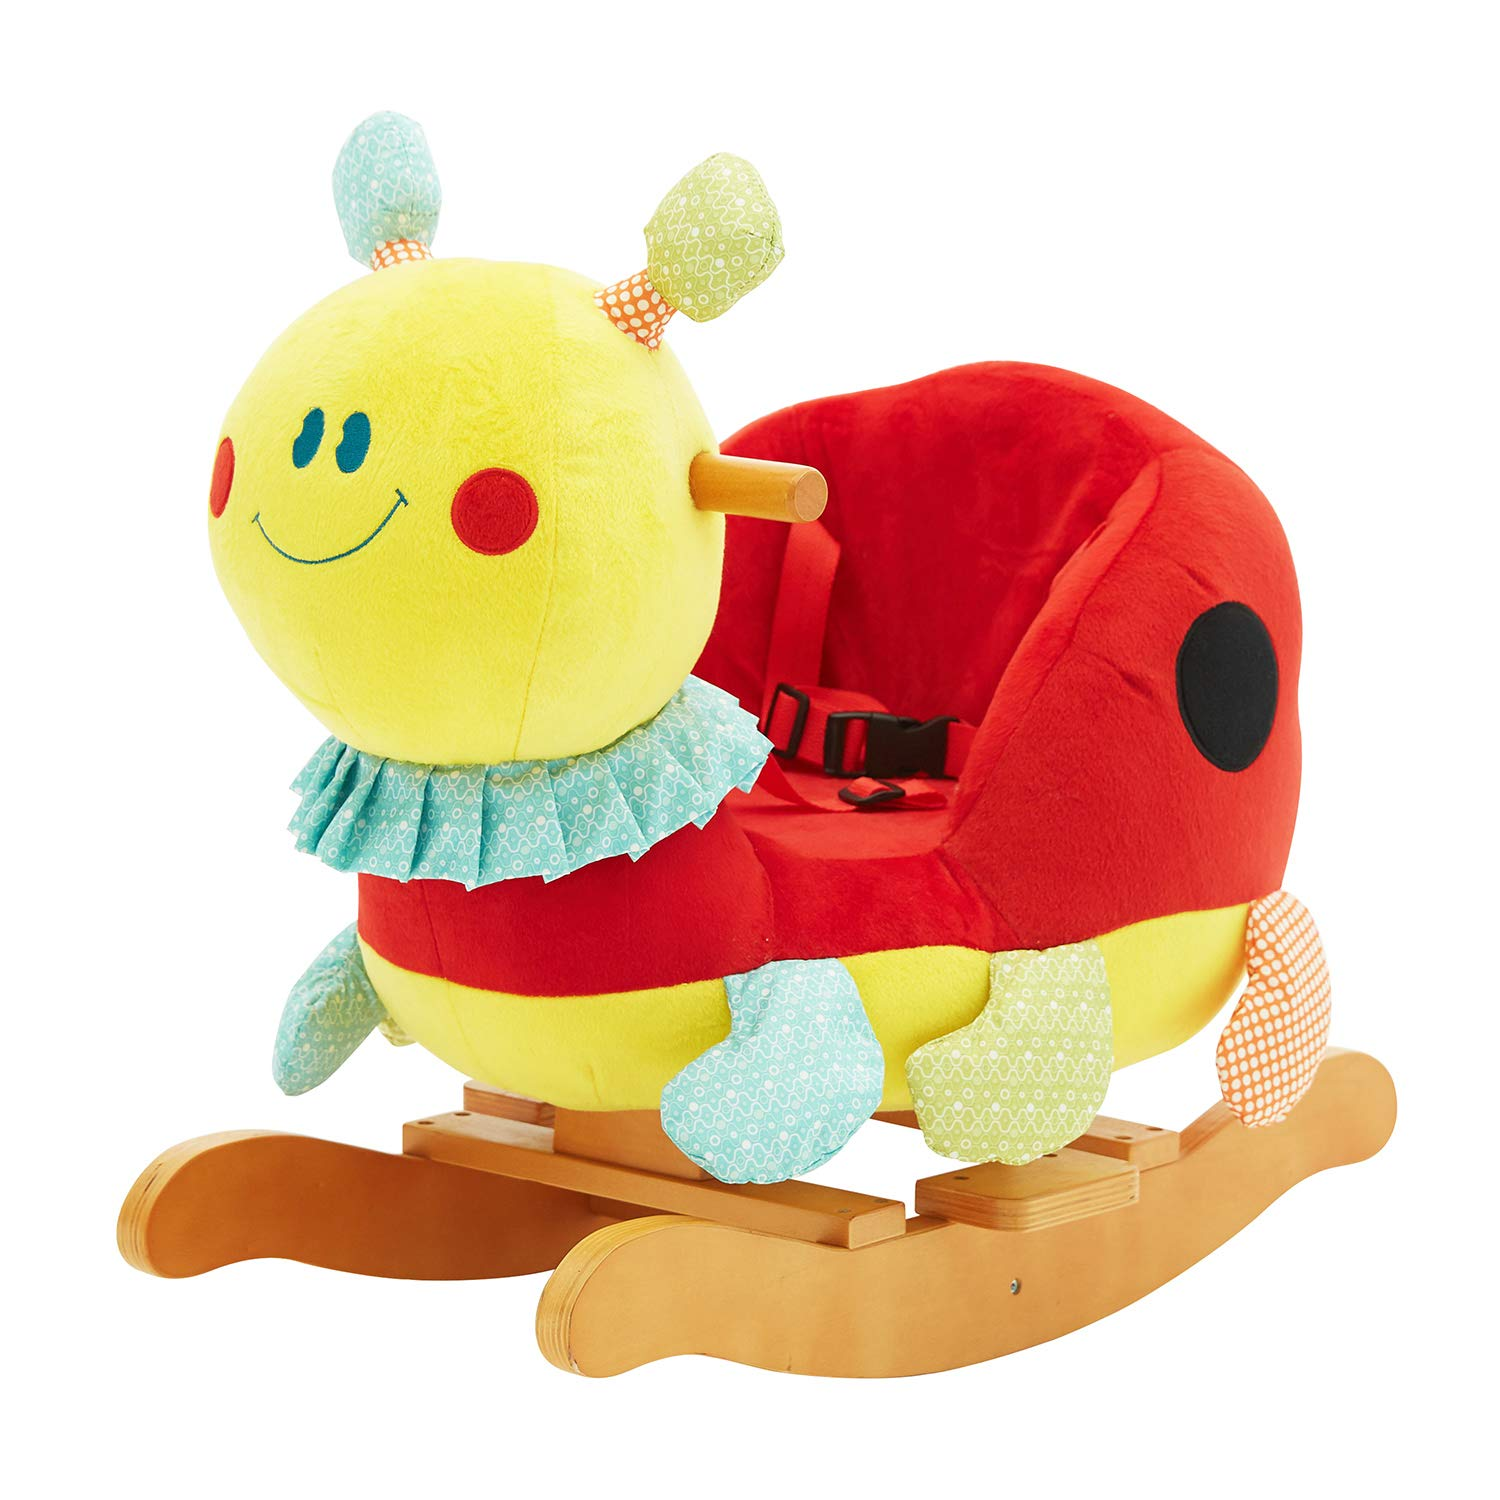 labebe 【New】 Bee Rocker Toy, Plush Rocking Horse for Baby 1-3 Year Old, Wooden Kid Ride On Toy for Girl&Boy, Infant Stuffed Riding Animal for Outdoor&Indoor, Toddler/Child Christmas or Birthday Gift